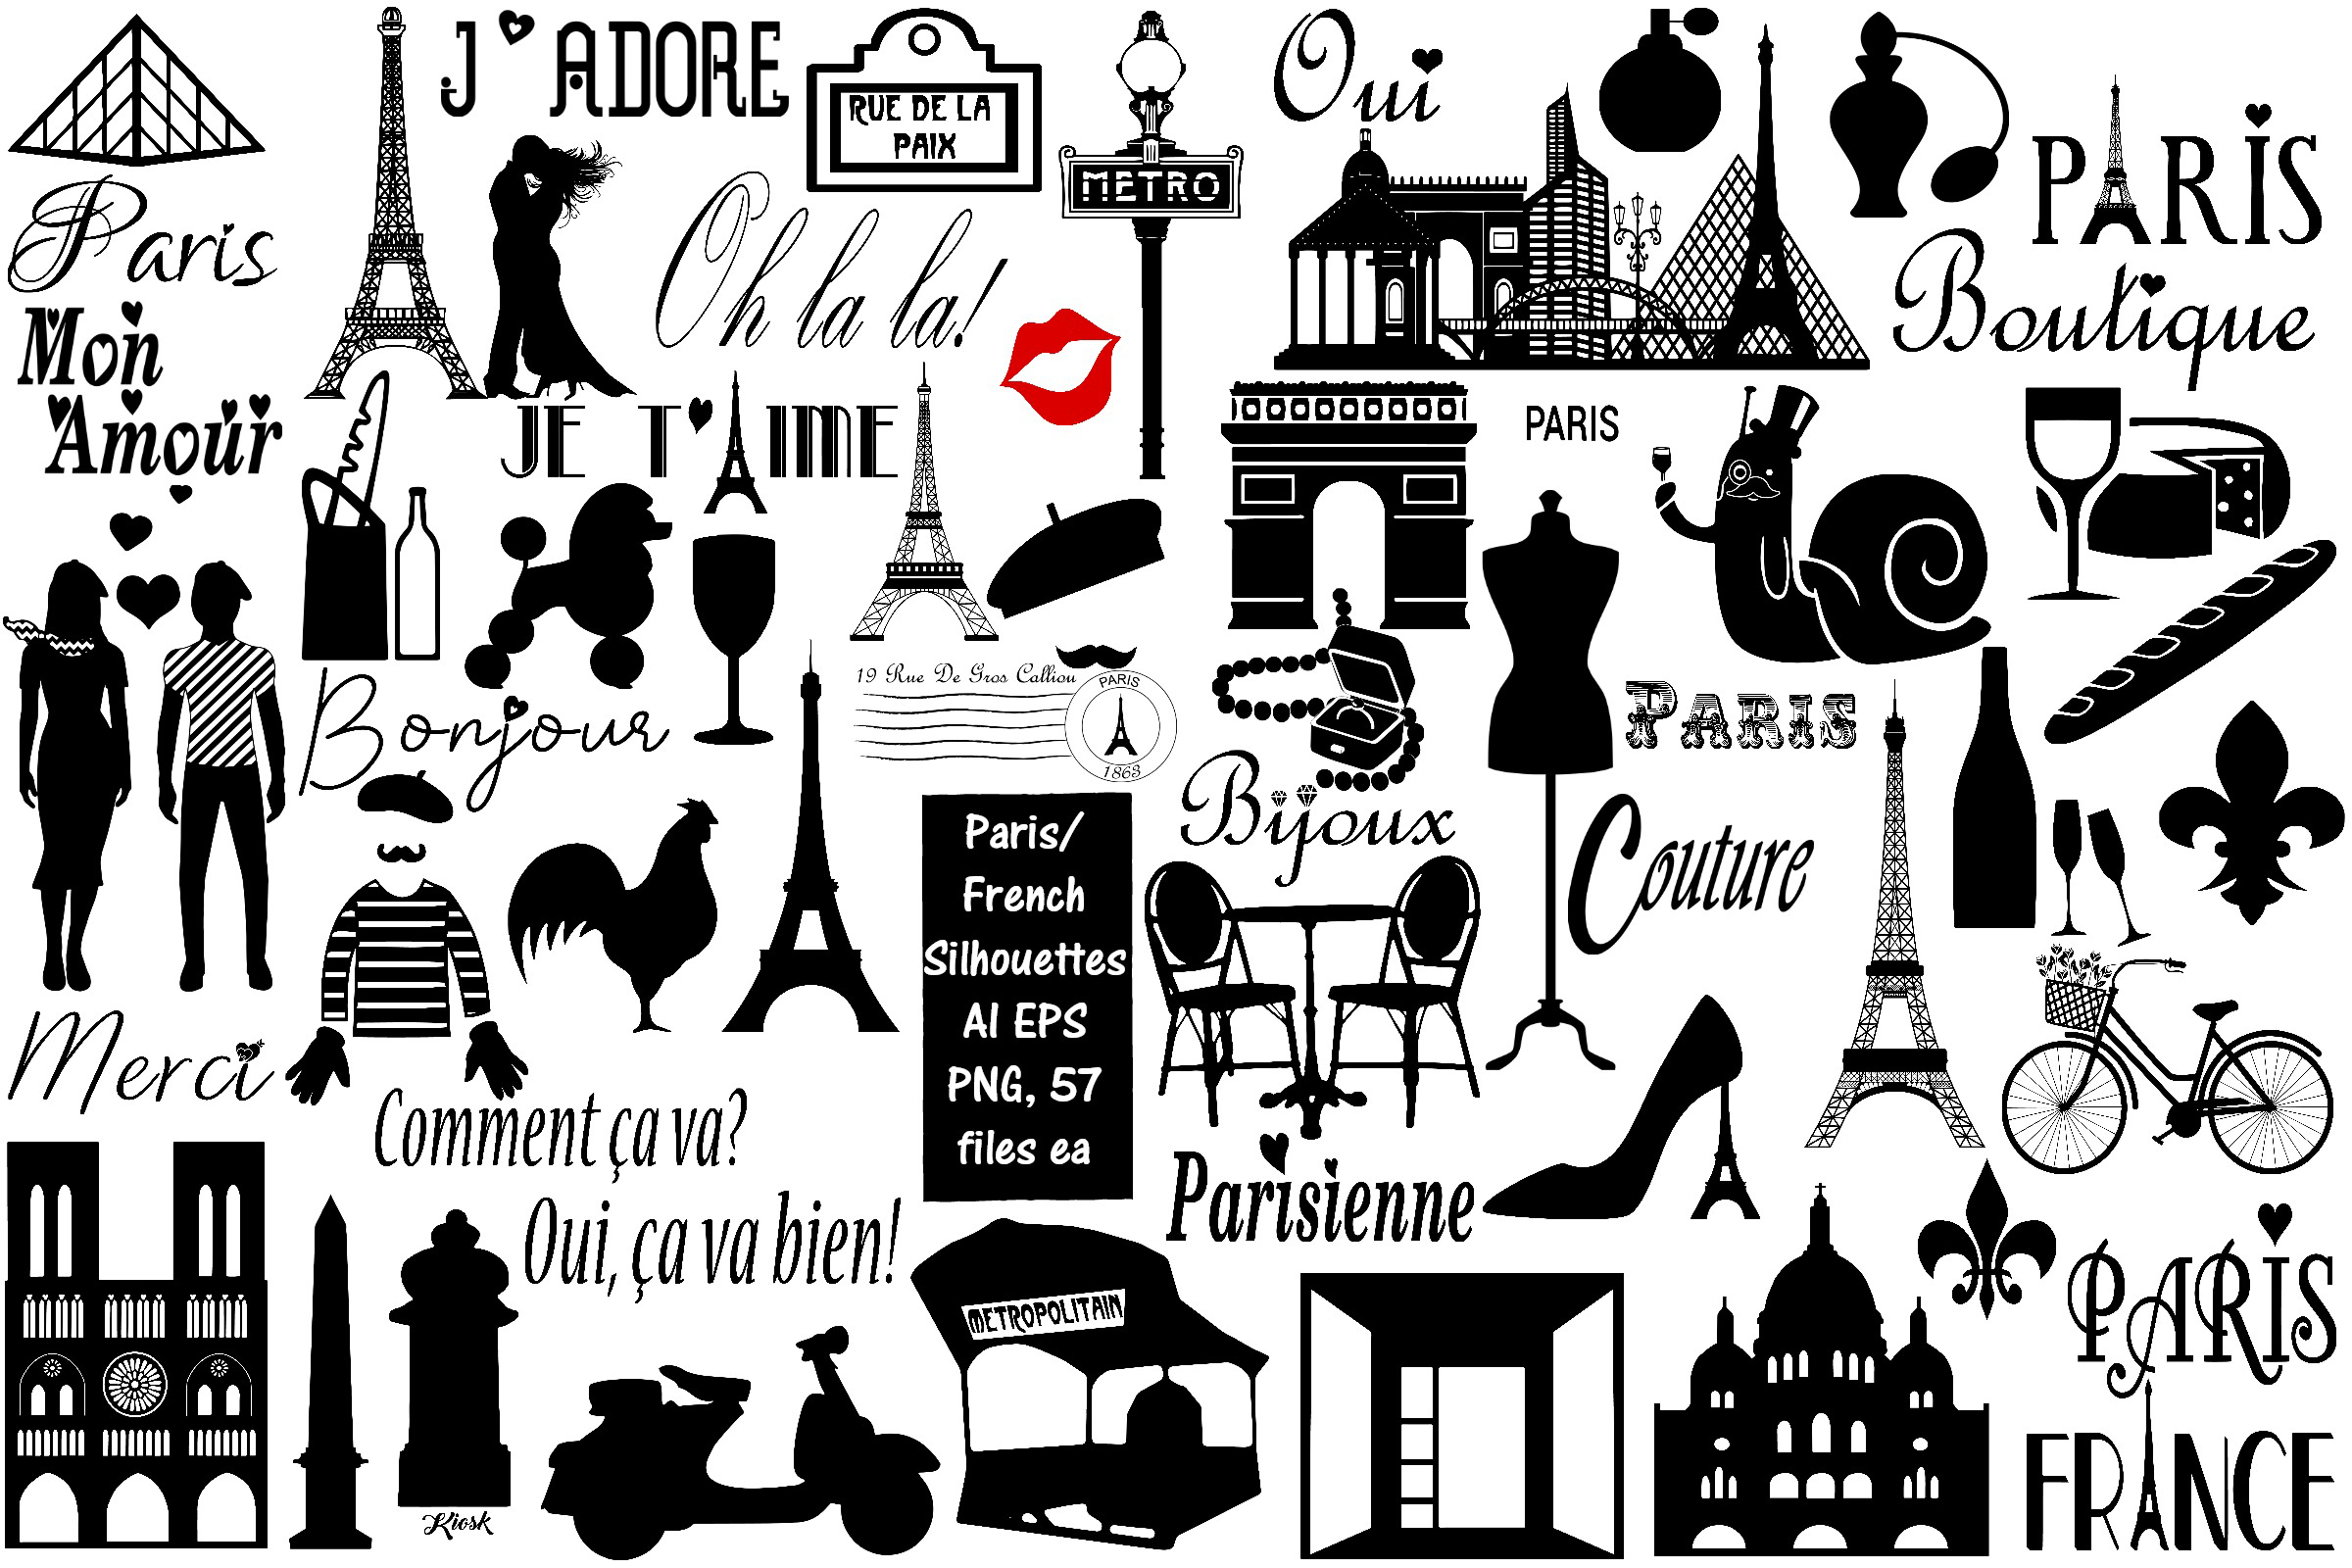 Paris and French Silhouettes AI EPS PNG, French Word Art.